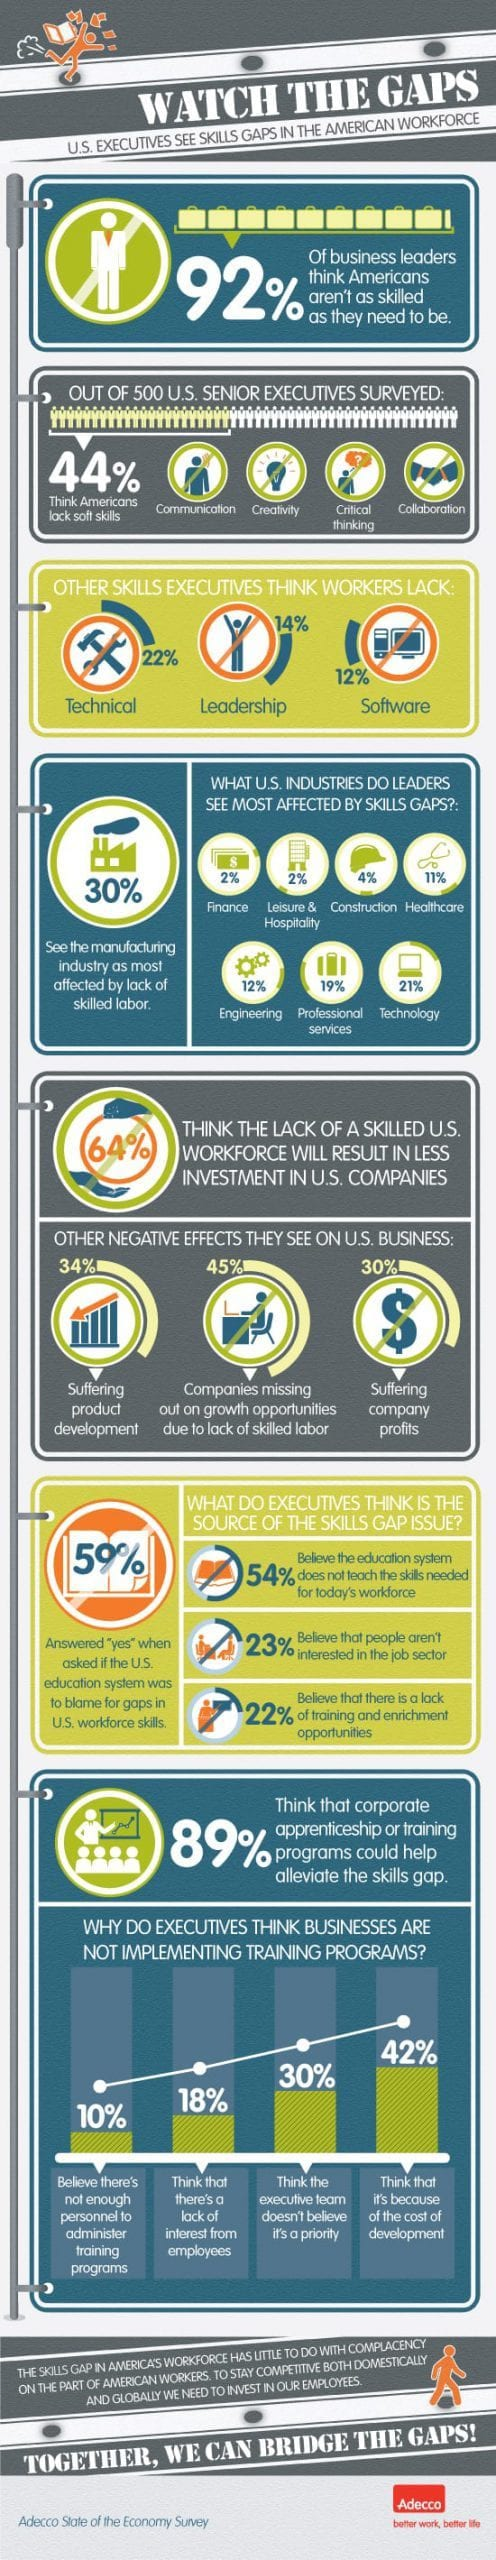 watch-the-gaps-infographic-2164983